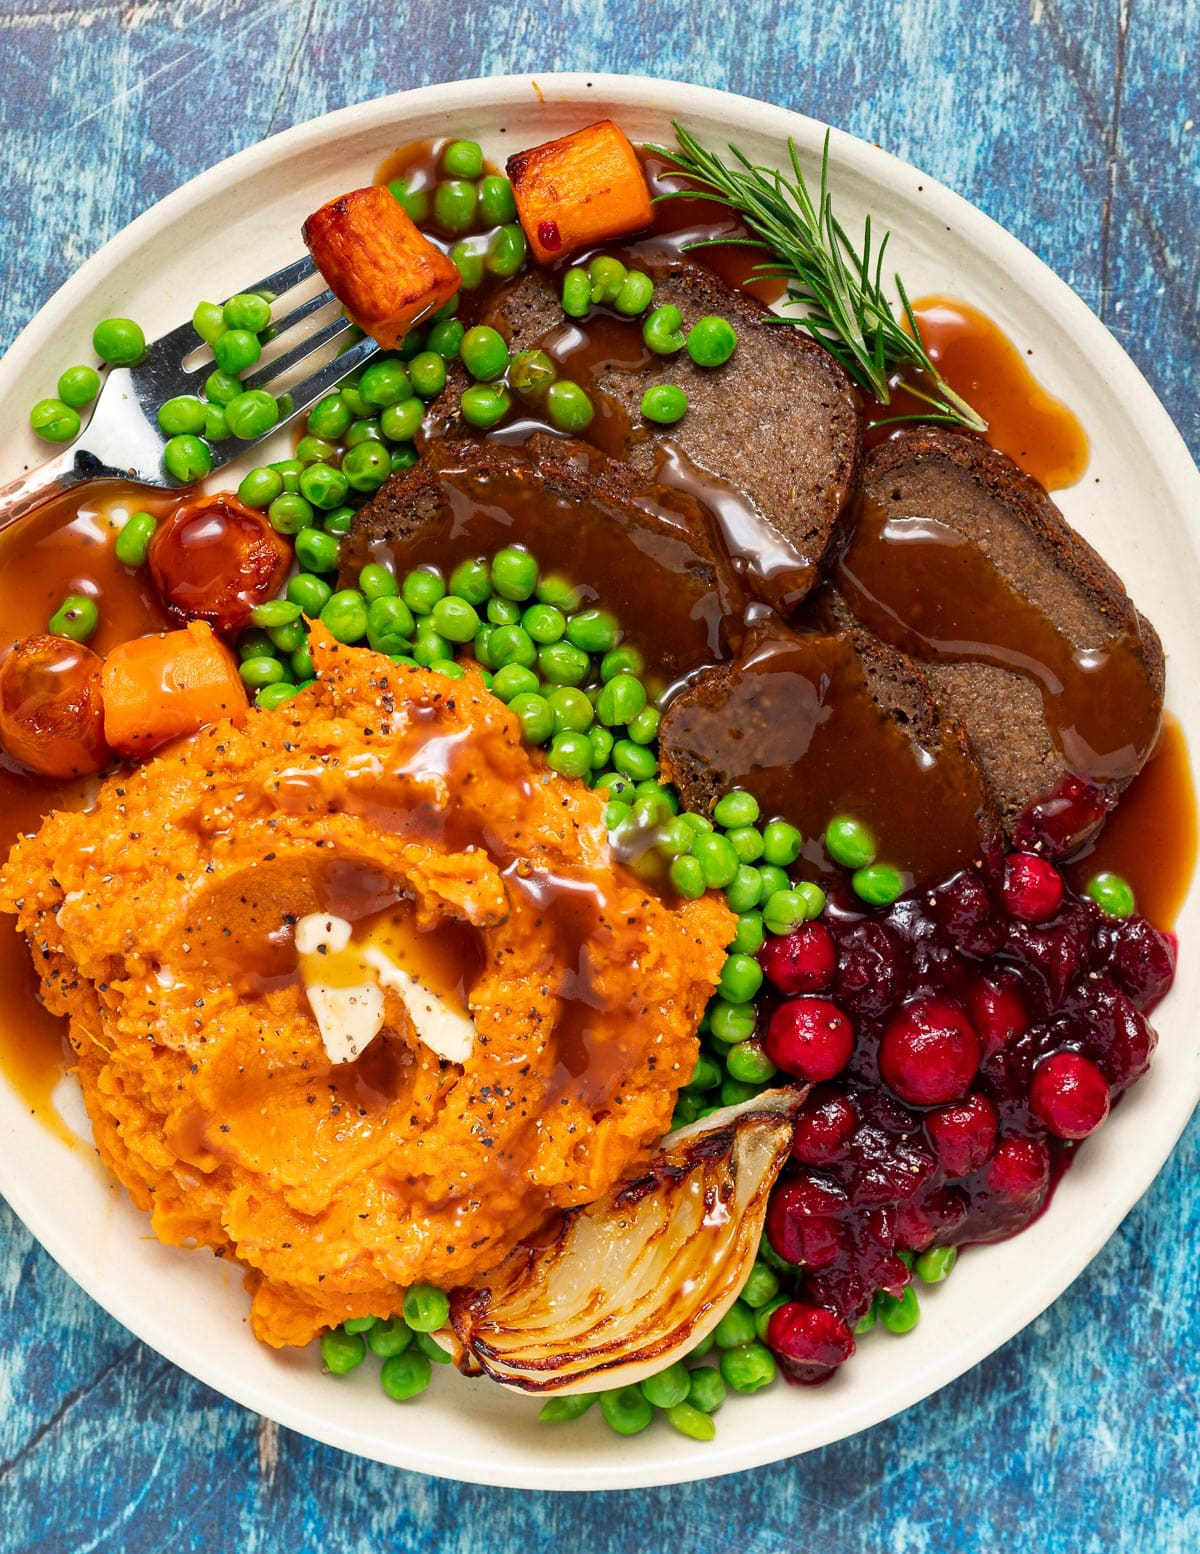 a plate of gluten-free seitan, mashed sweet potato, gravy and vegetables